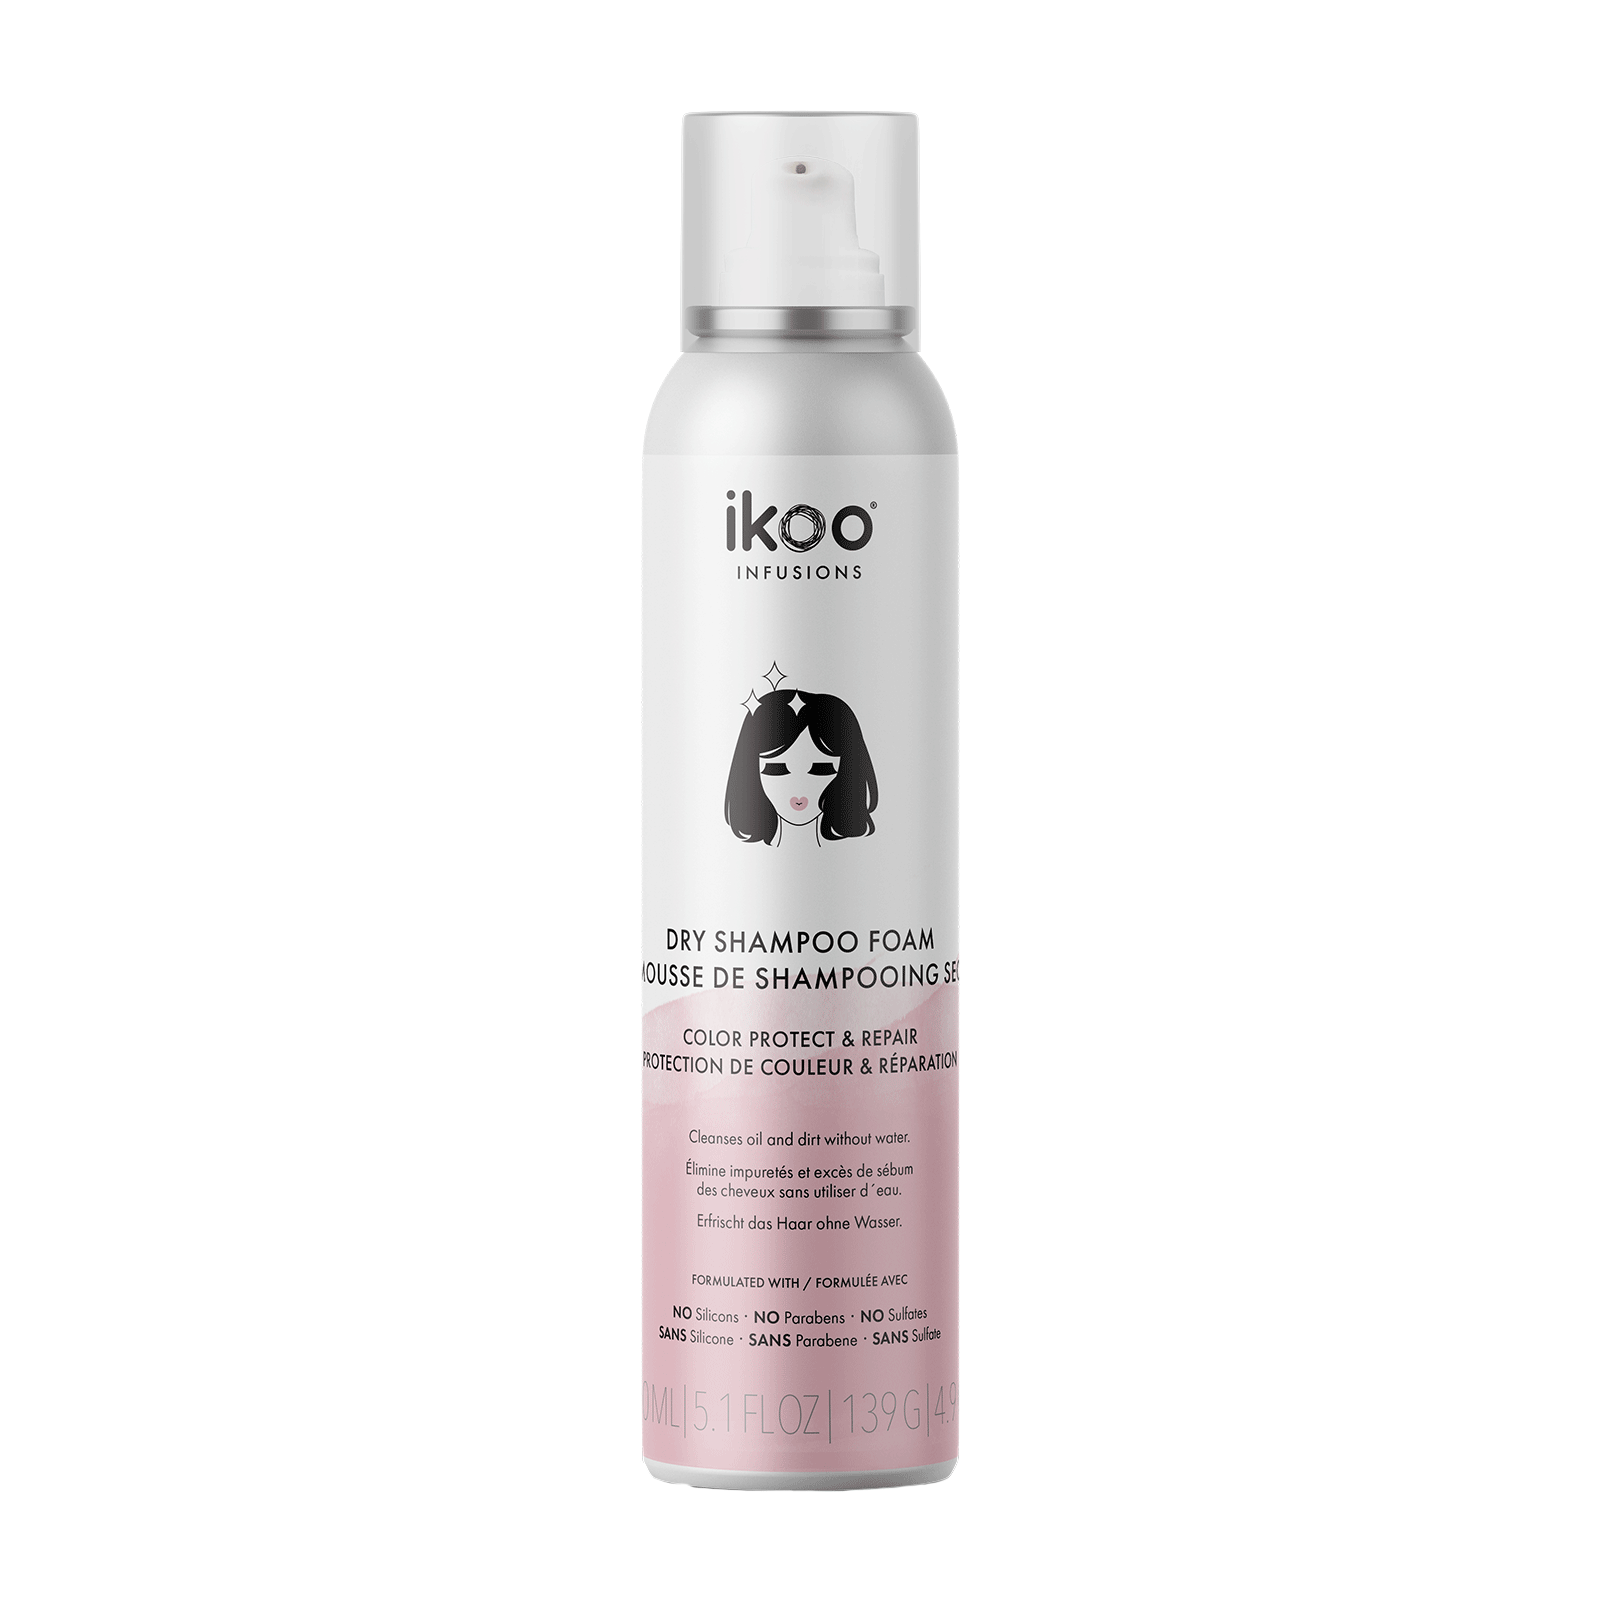 Dry Shampoo Foam Color Protect & Repair